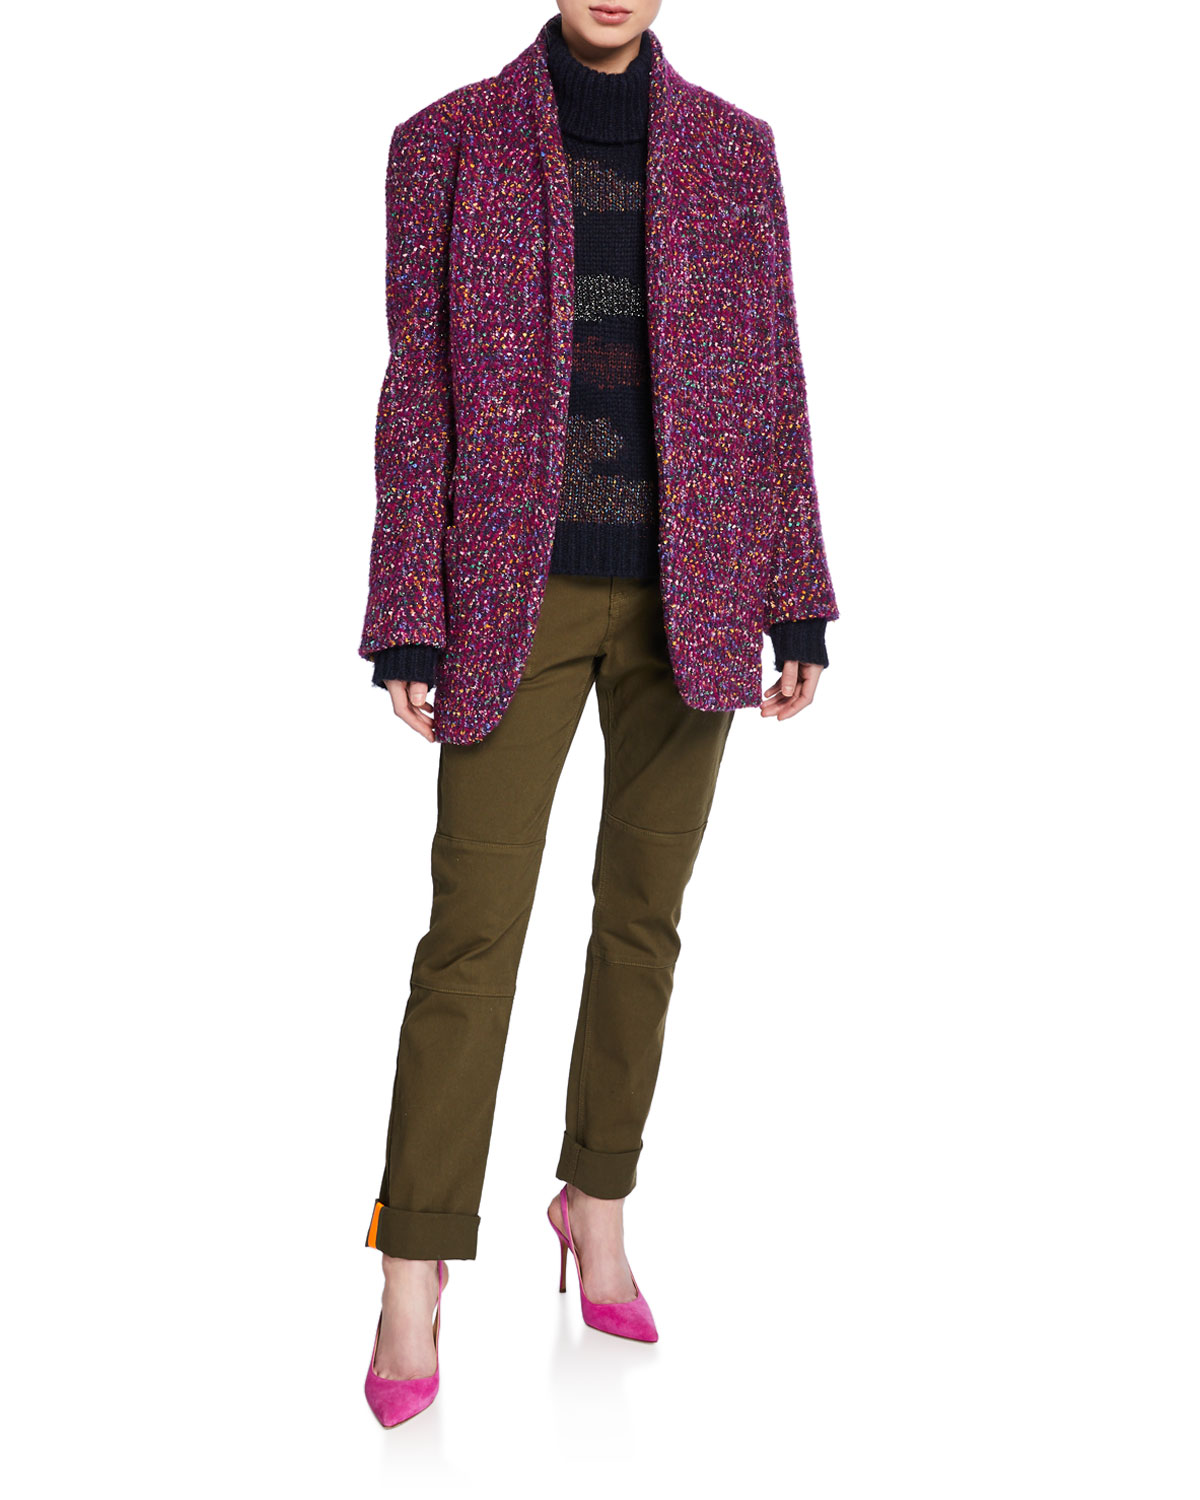 Veronica Beard Coats CRISPIN OPEN-FRONT COAT